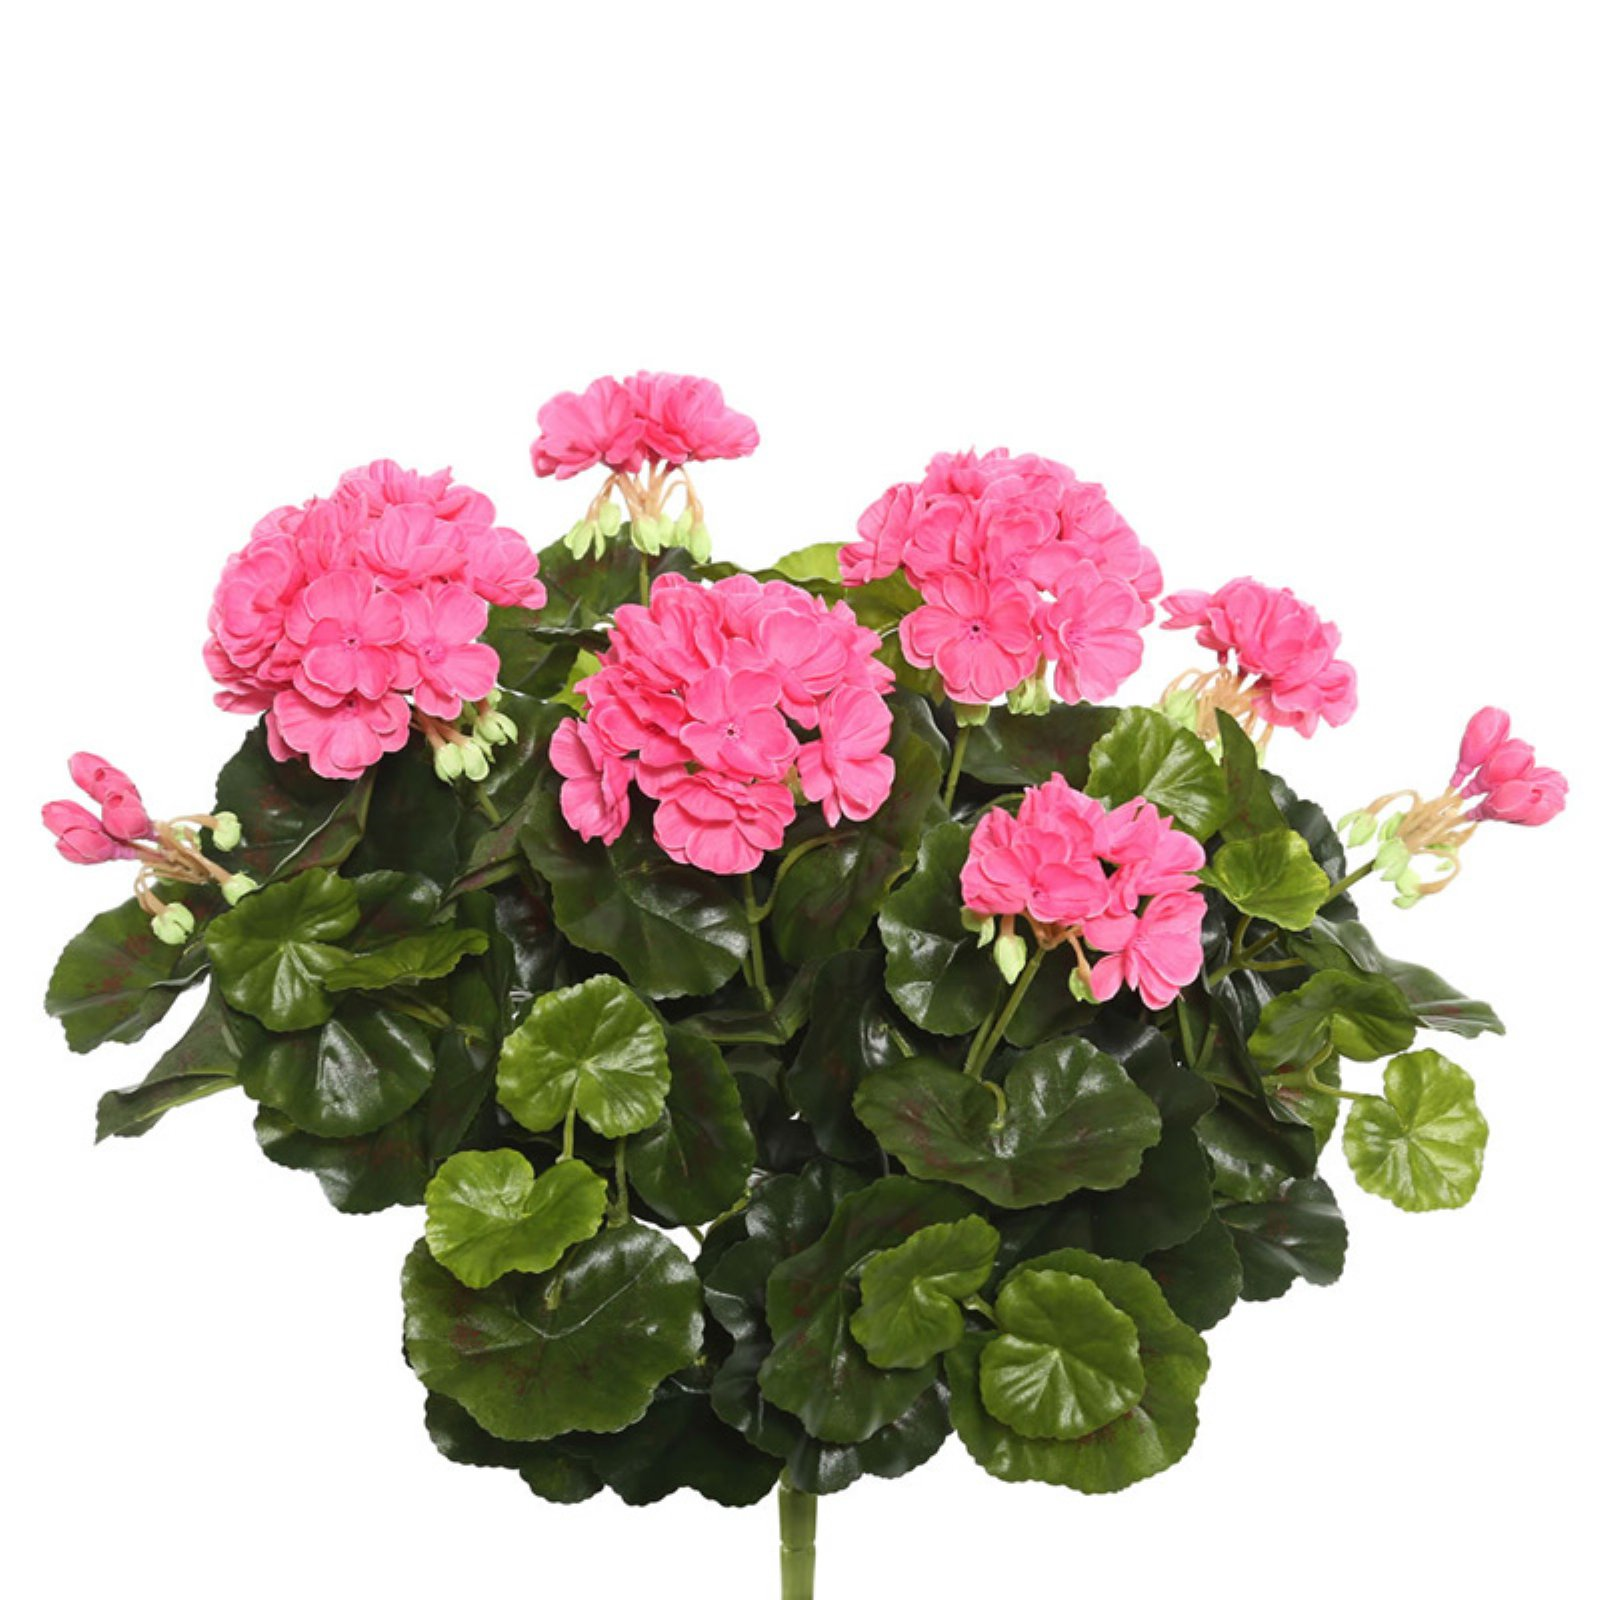 """Vickerman 17.5"""" Pink Polyester Geranium Bush with 96 Leaves and 115 Flowers and Buds"""